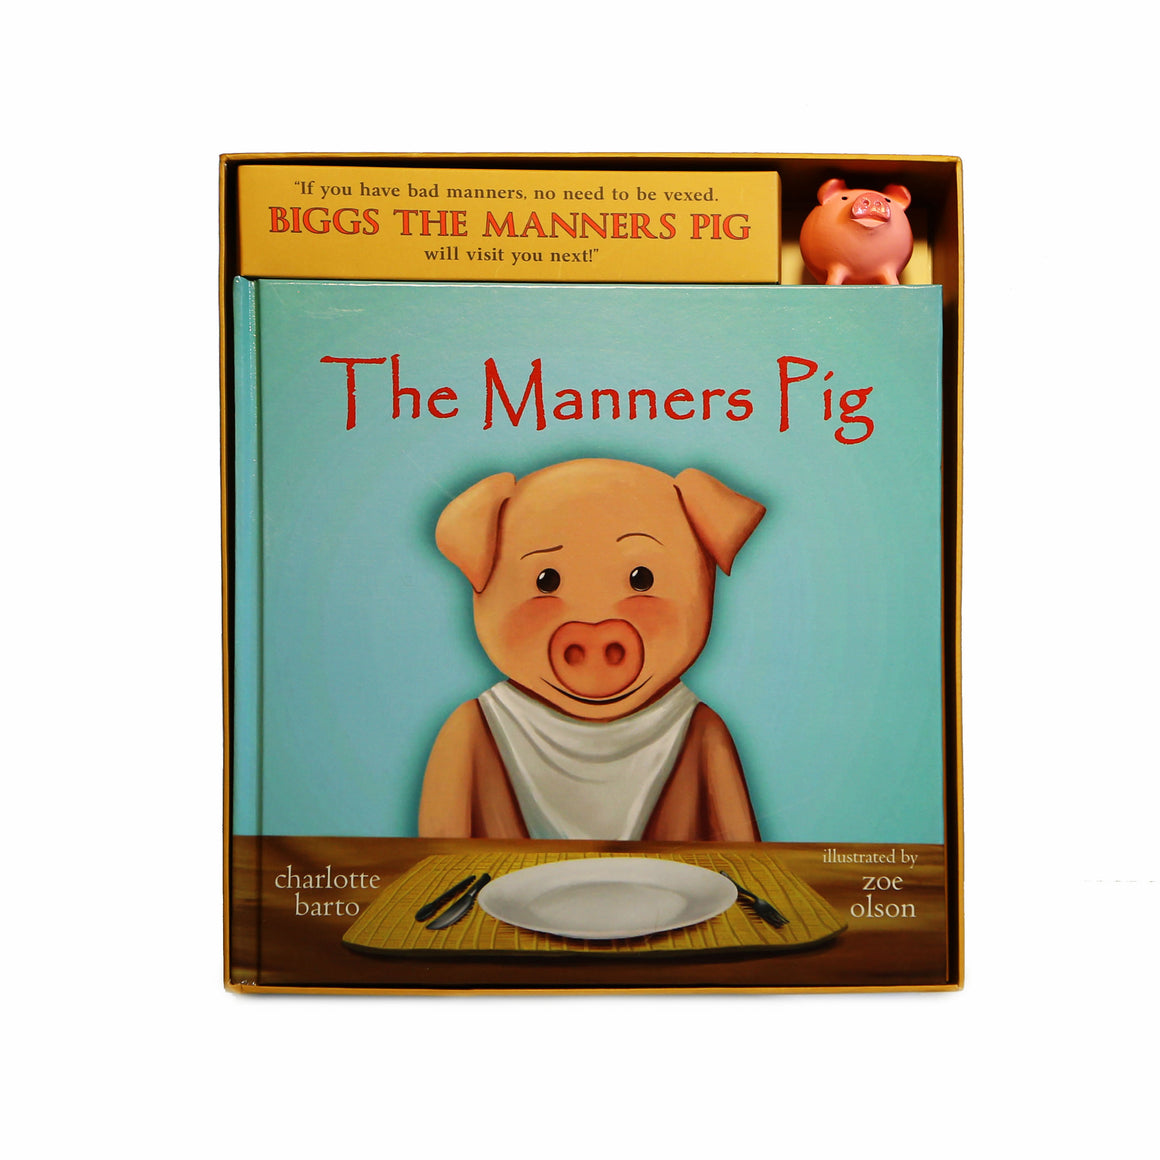 Manners Pig Book And Toy Pig Set